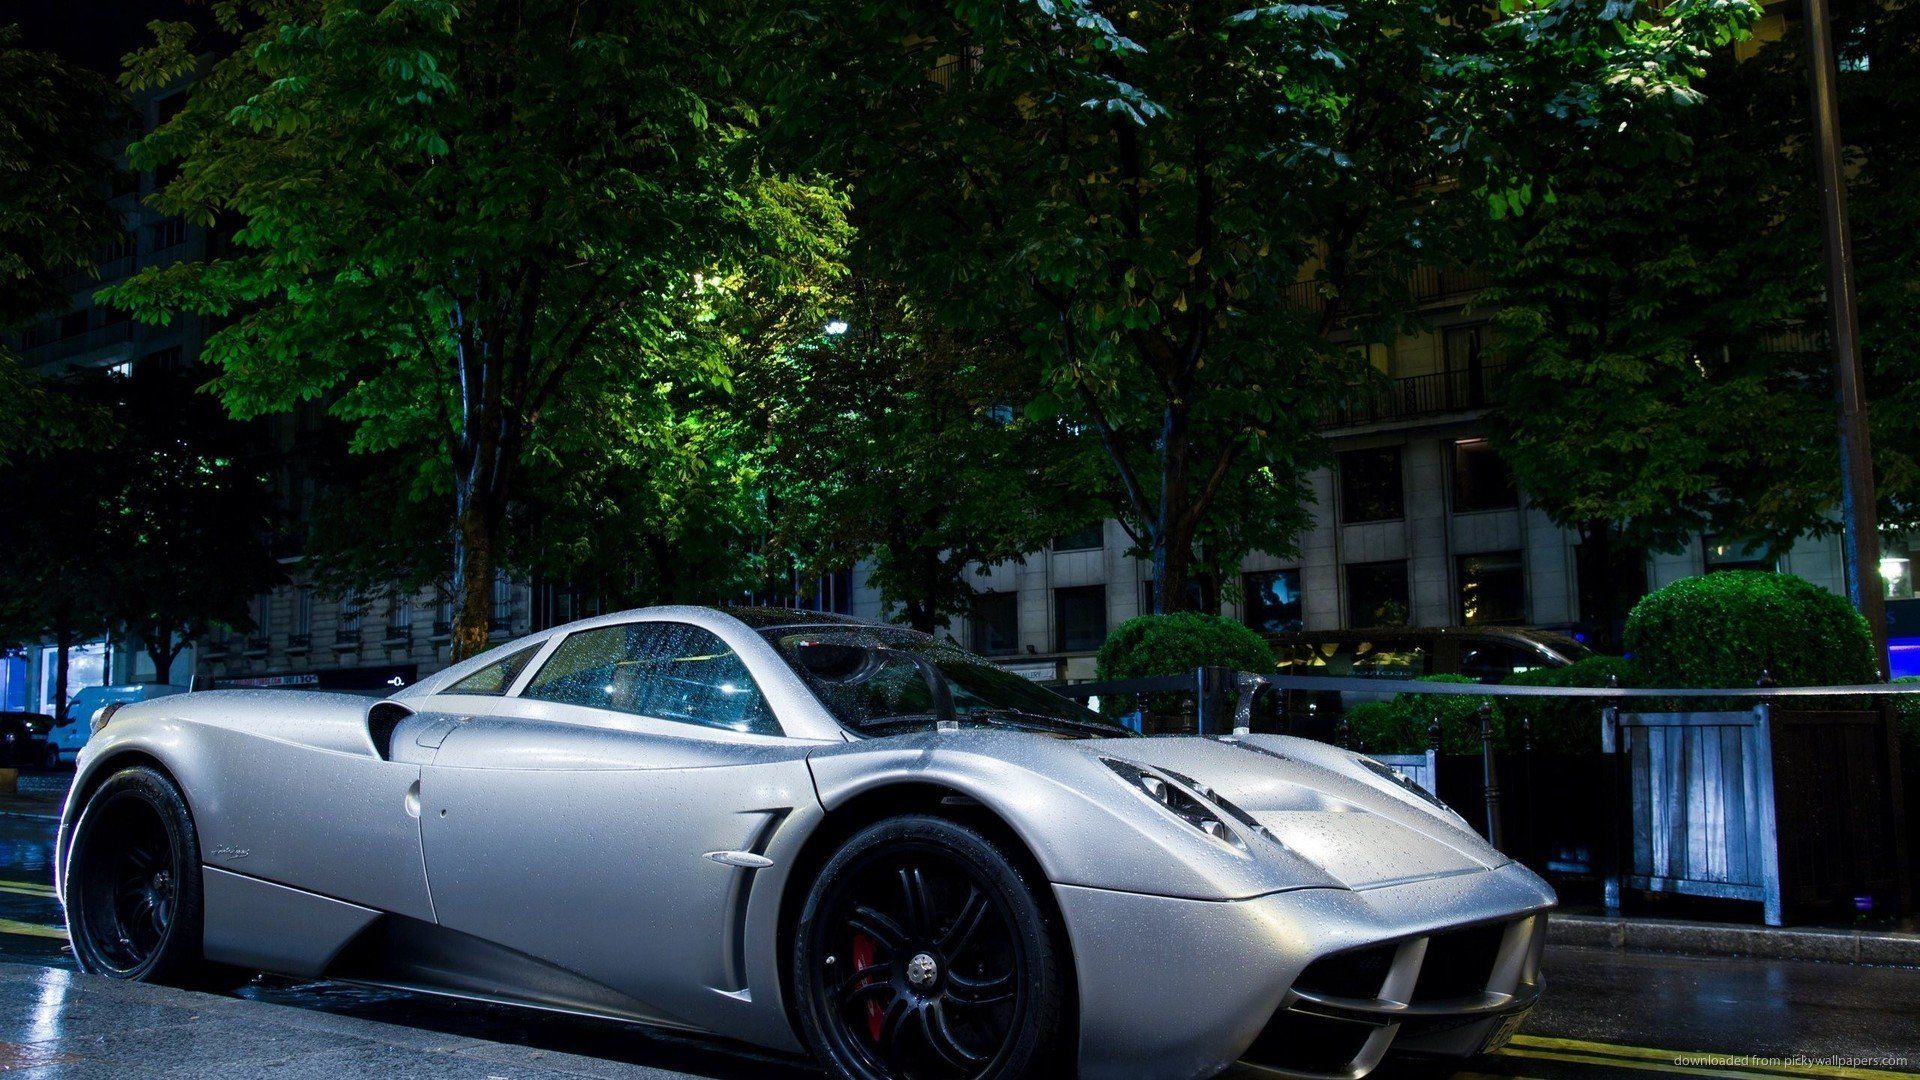 Awesome Pagani Huayra Free Wallpaper ID:160196 For 1080p PC